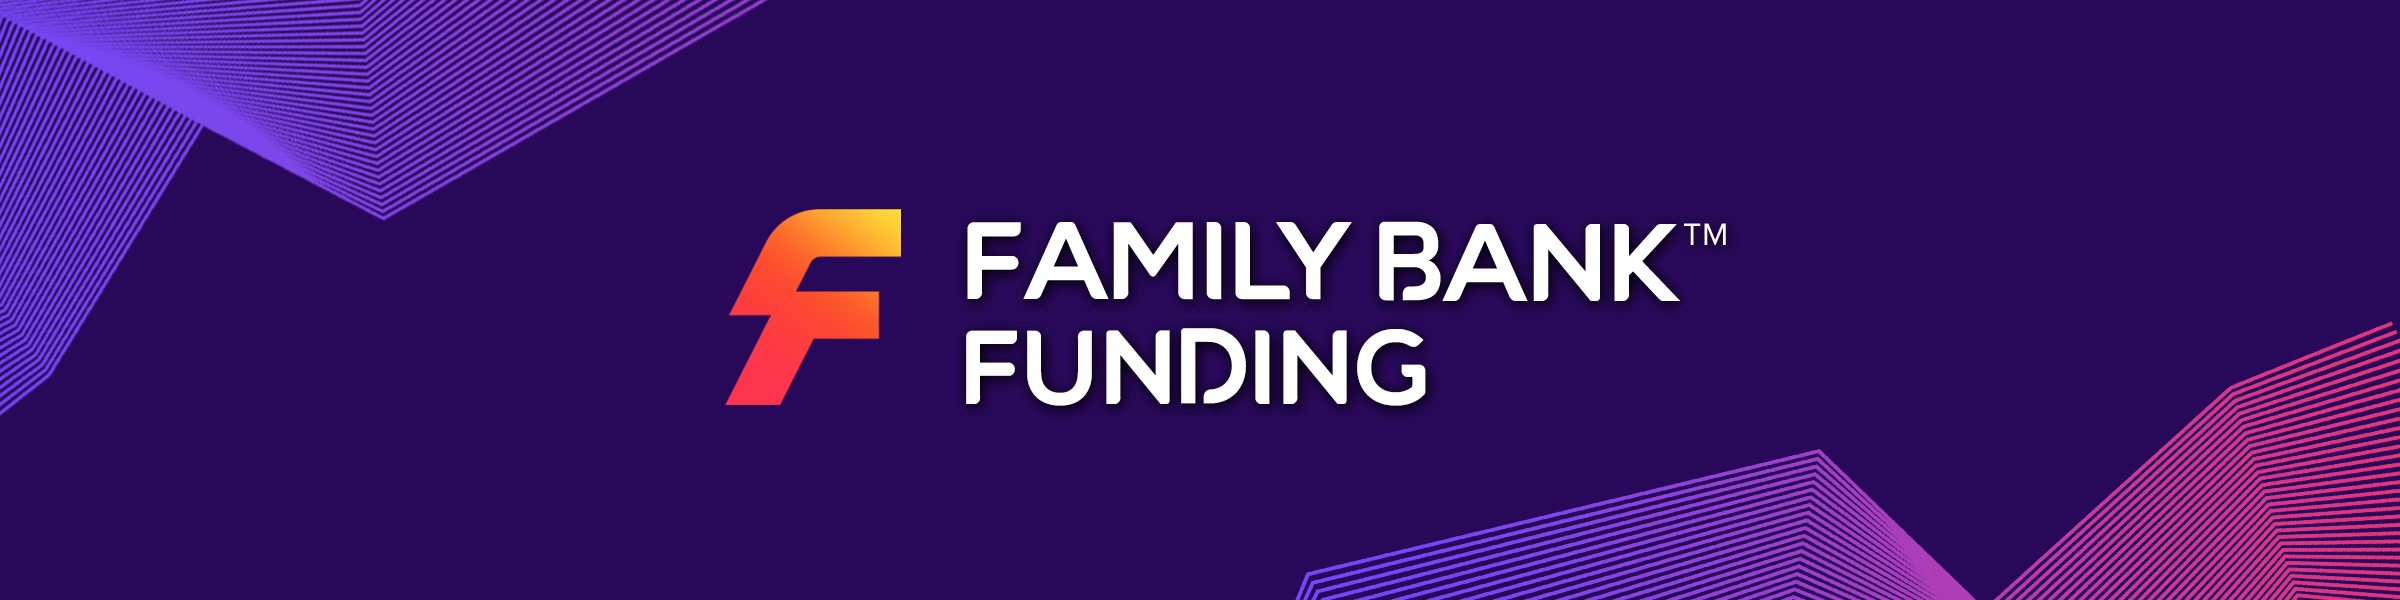 "Announcing: ""Family Bank Funding"" by Cameron Dunlap"